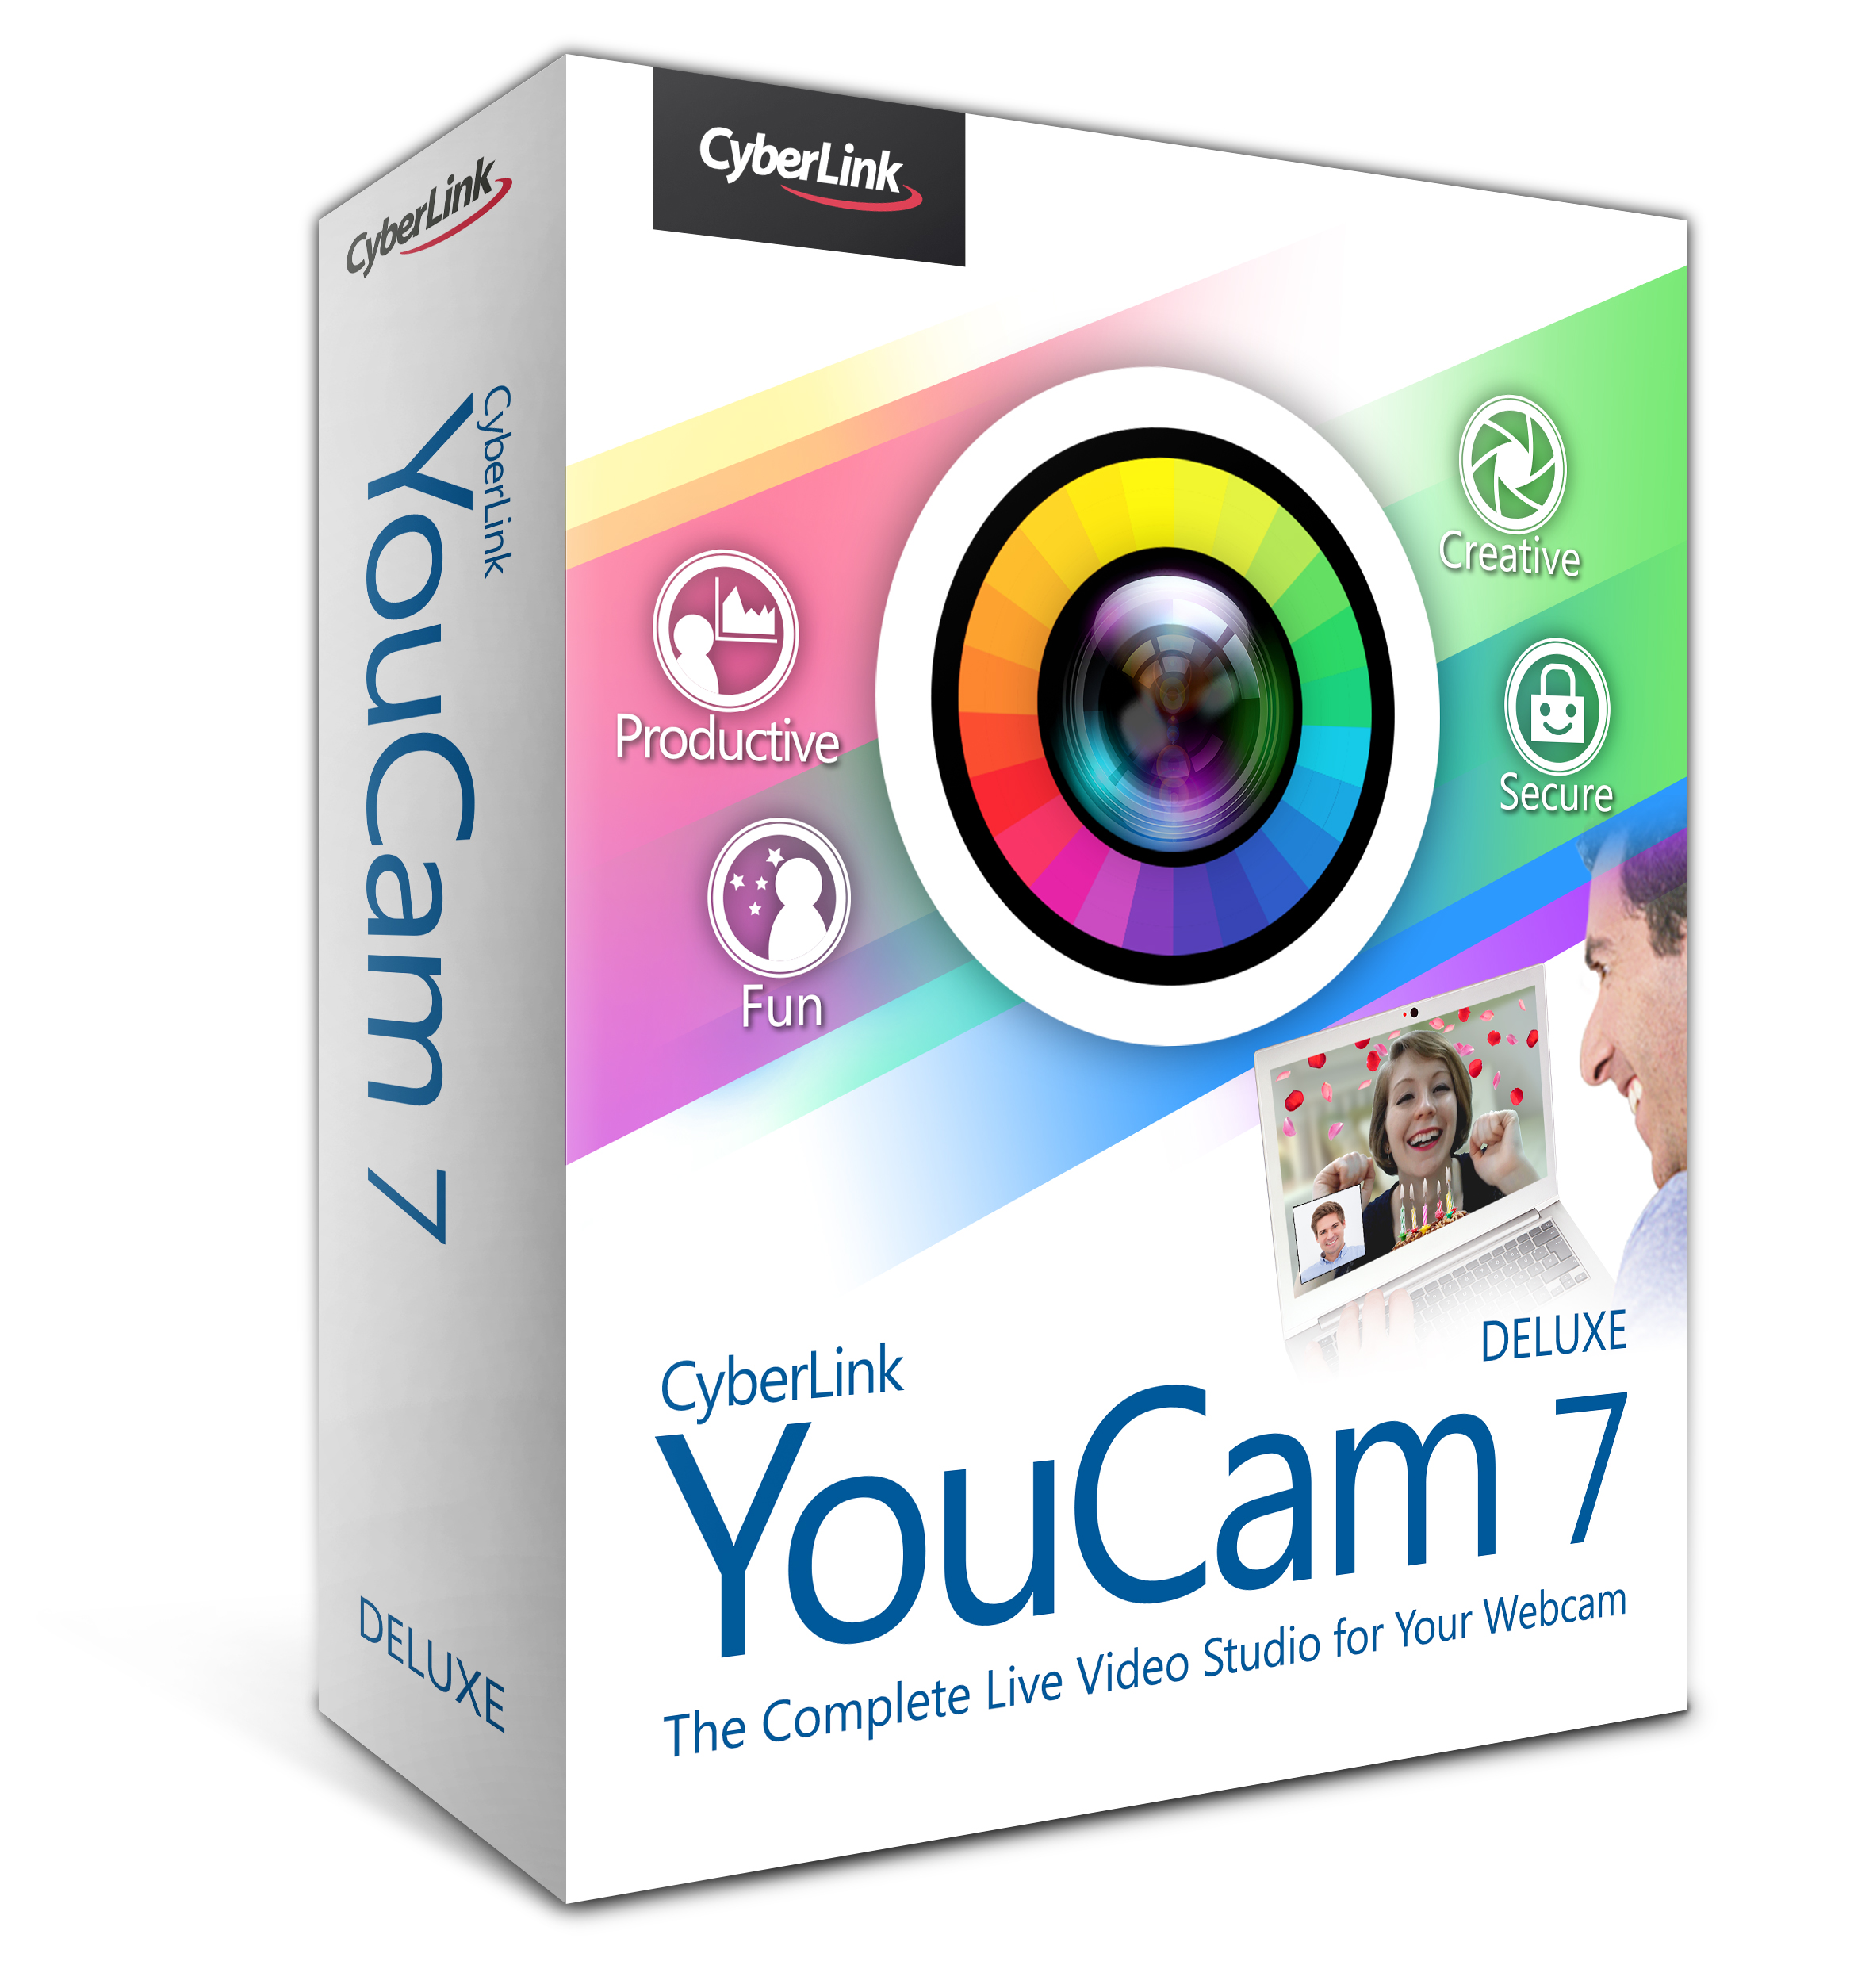 Upgrade to YouCam 7 Deluxe from v.1/3 versions